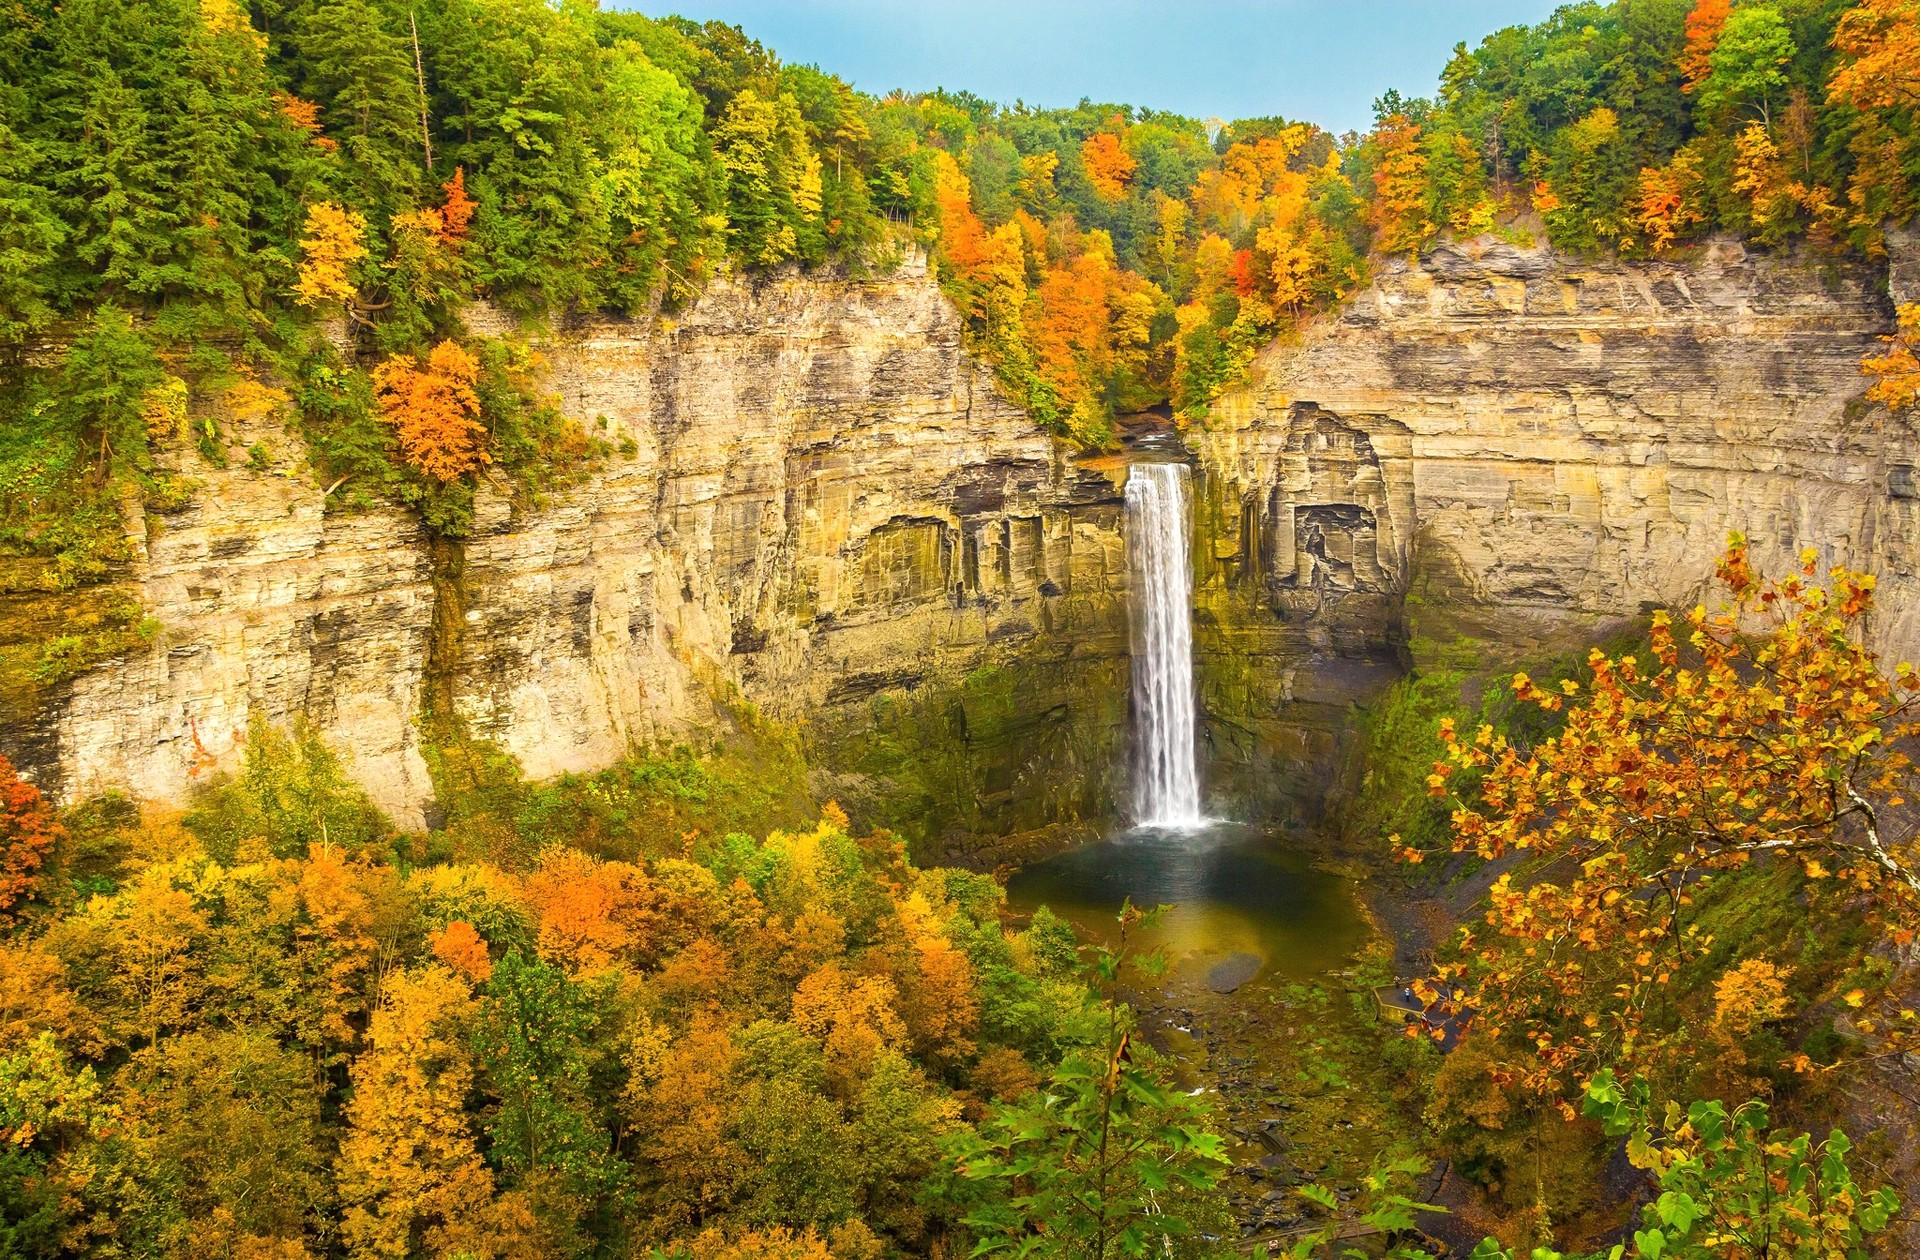 Fall Foliage Wallpaper 1920x1080 Autumn Waterfall Hd Wallpaper Background Image